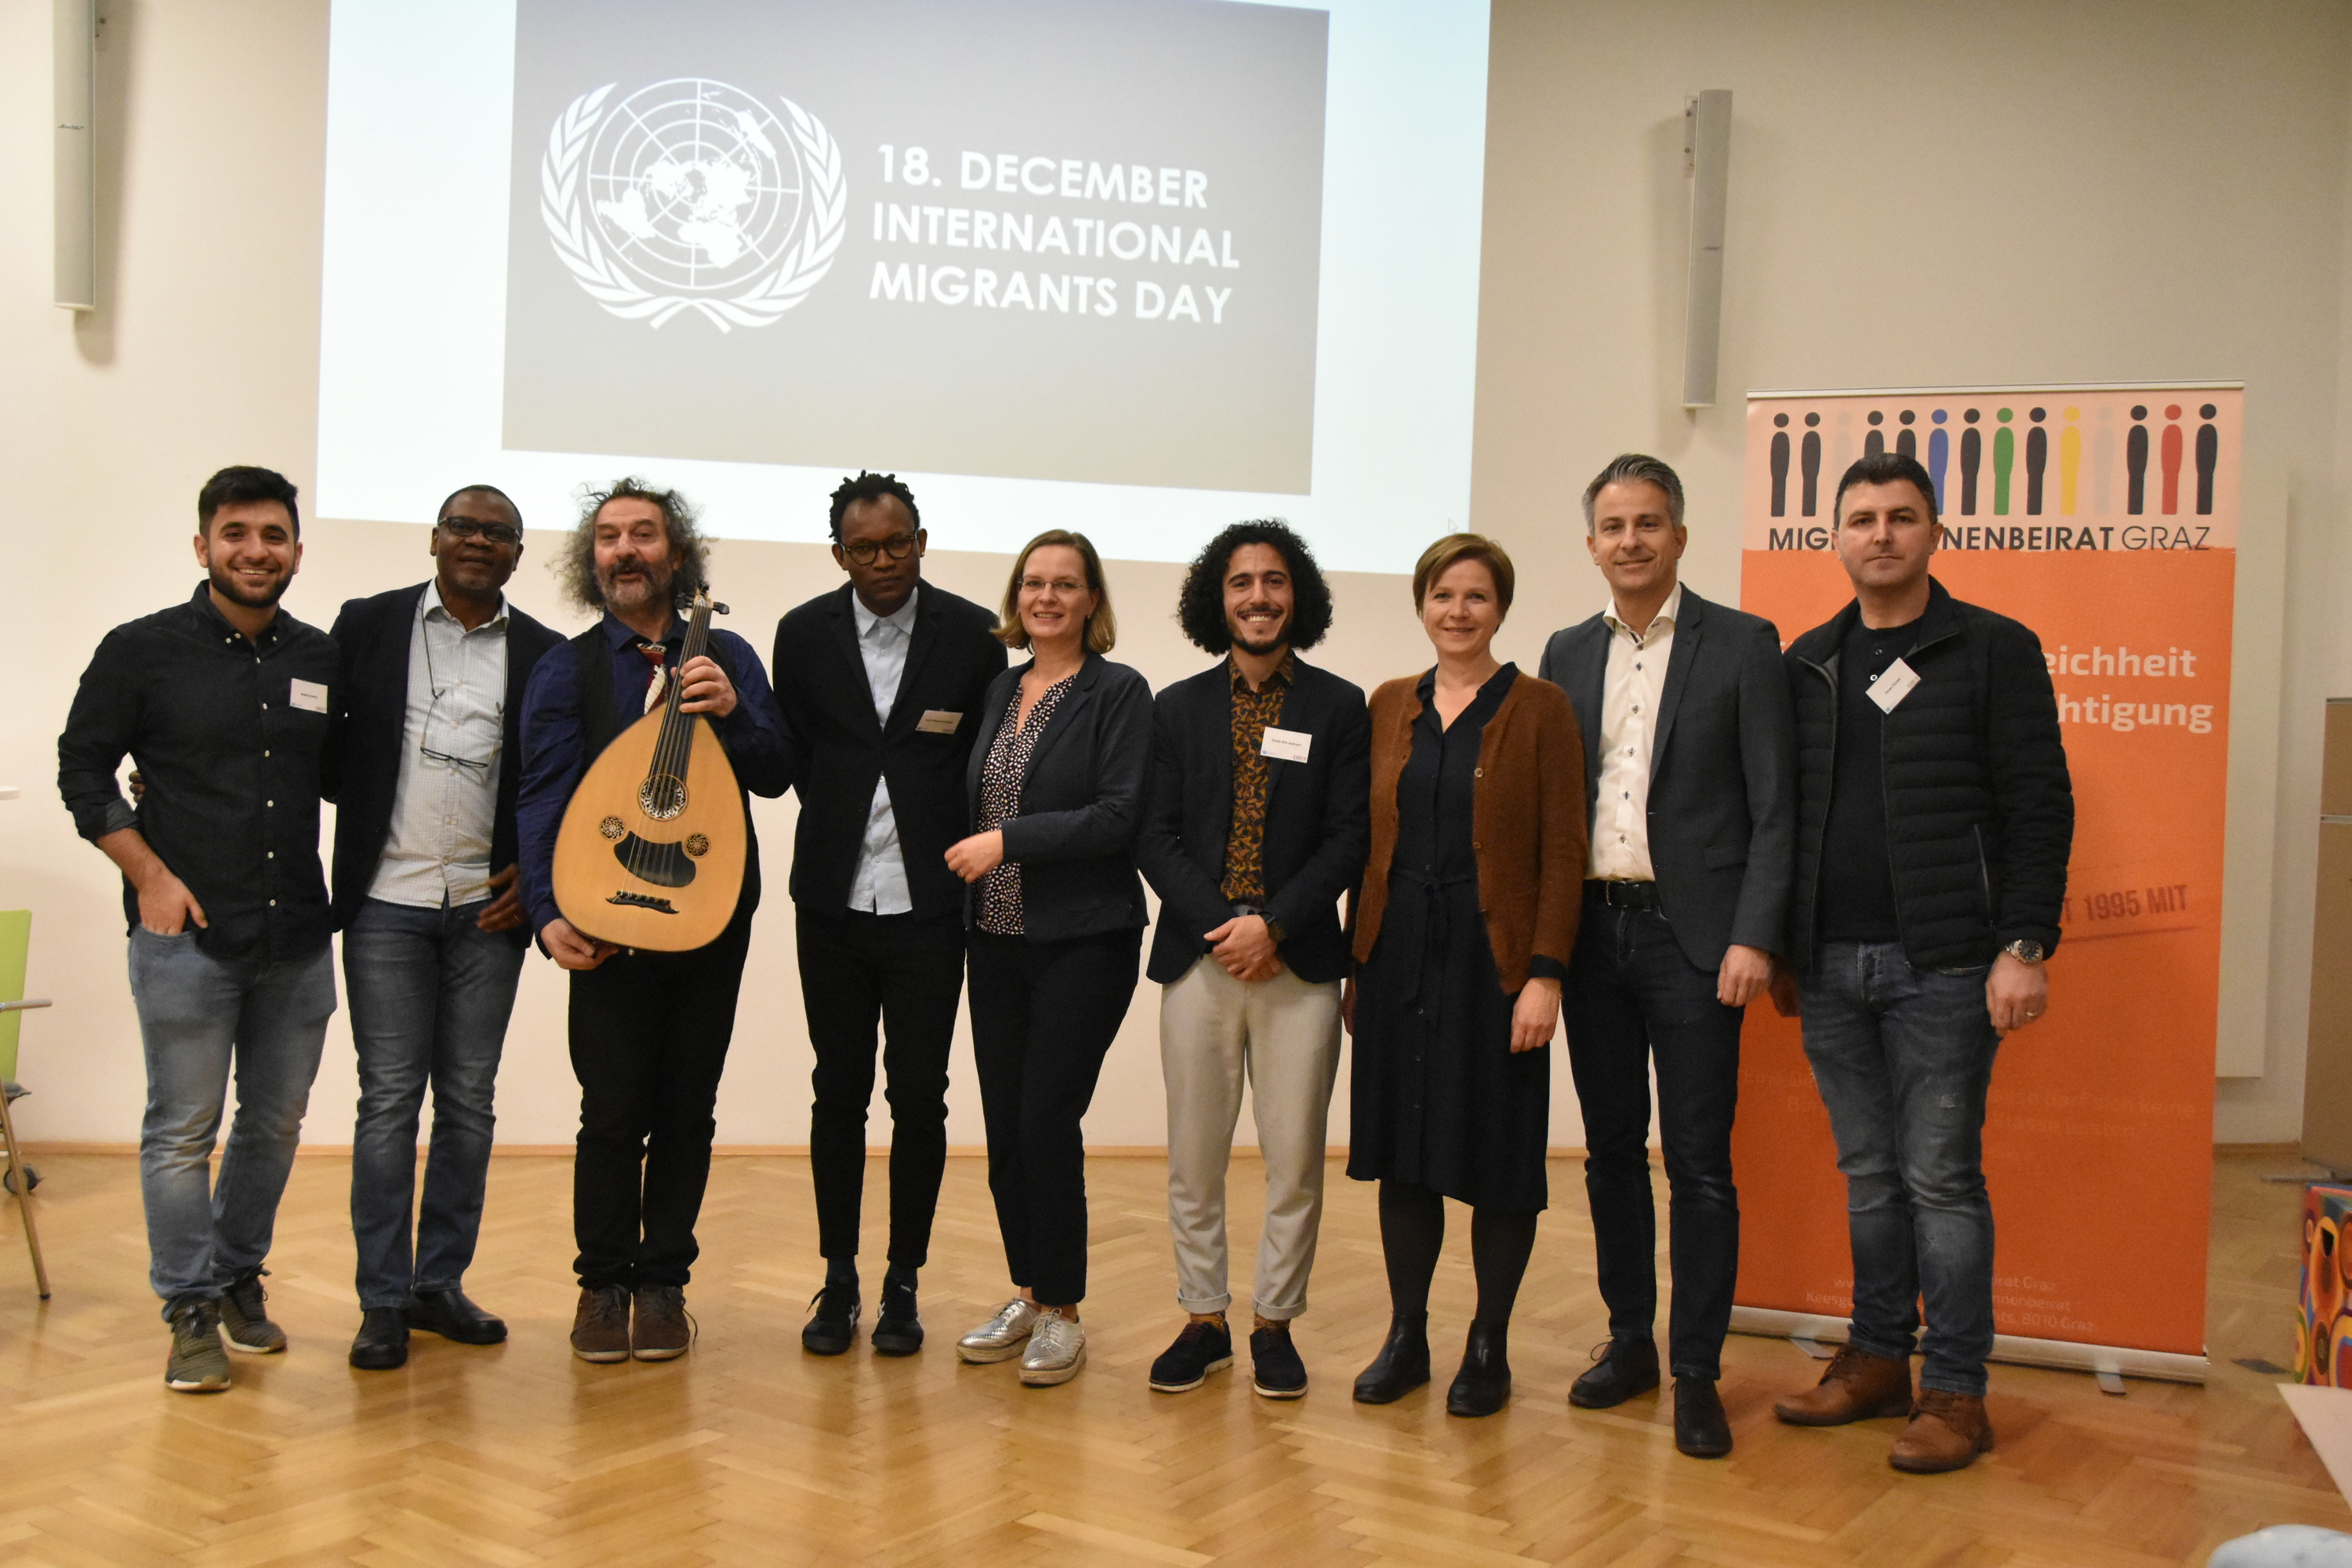 Internationaler Tag der MigrantInnen 2019 © Hajiloo Photography/MigrantInnenbeirat